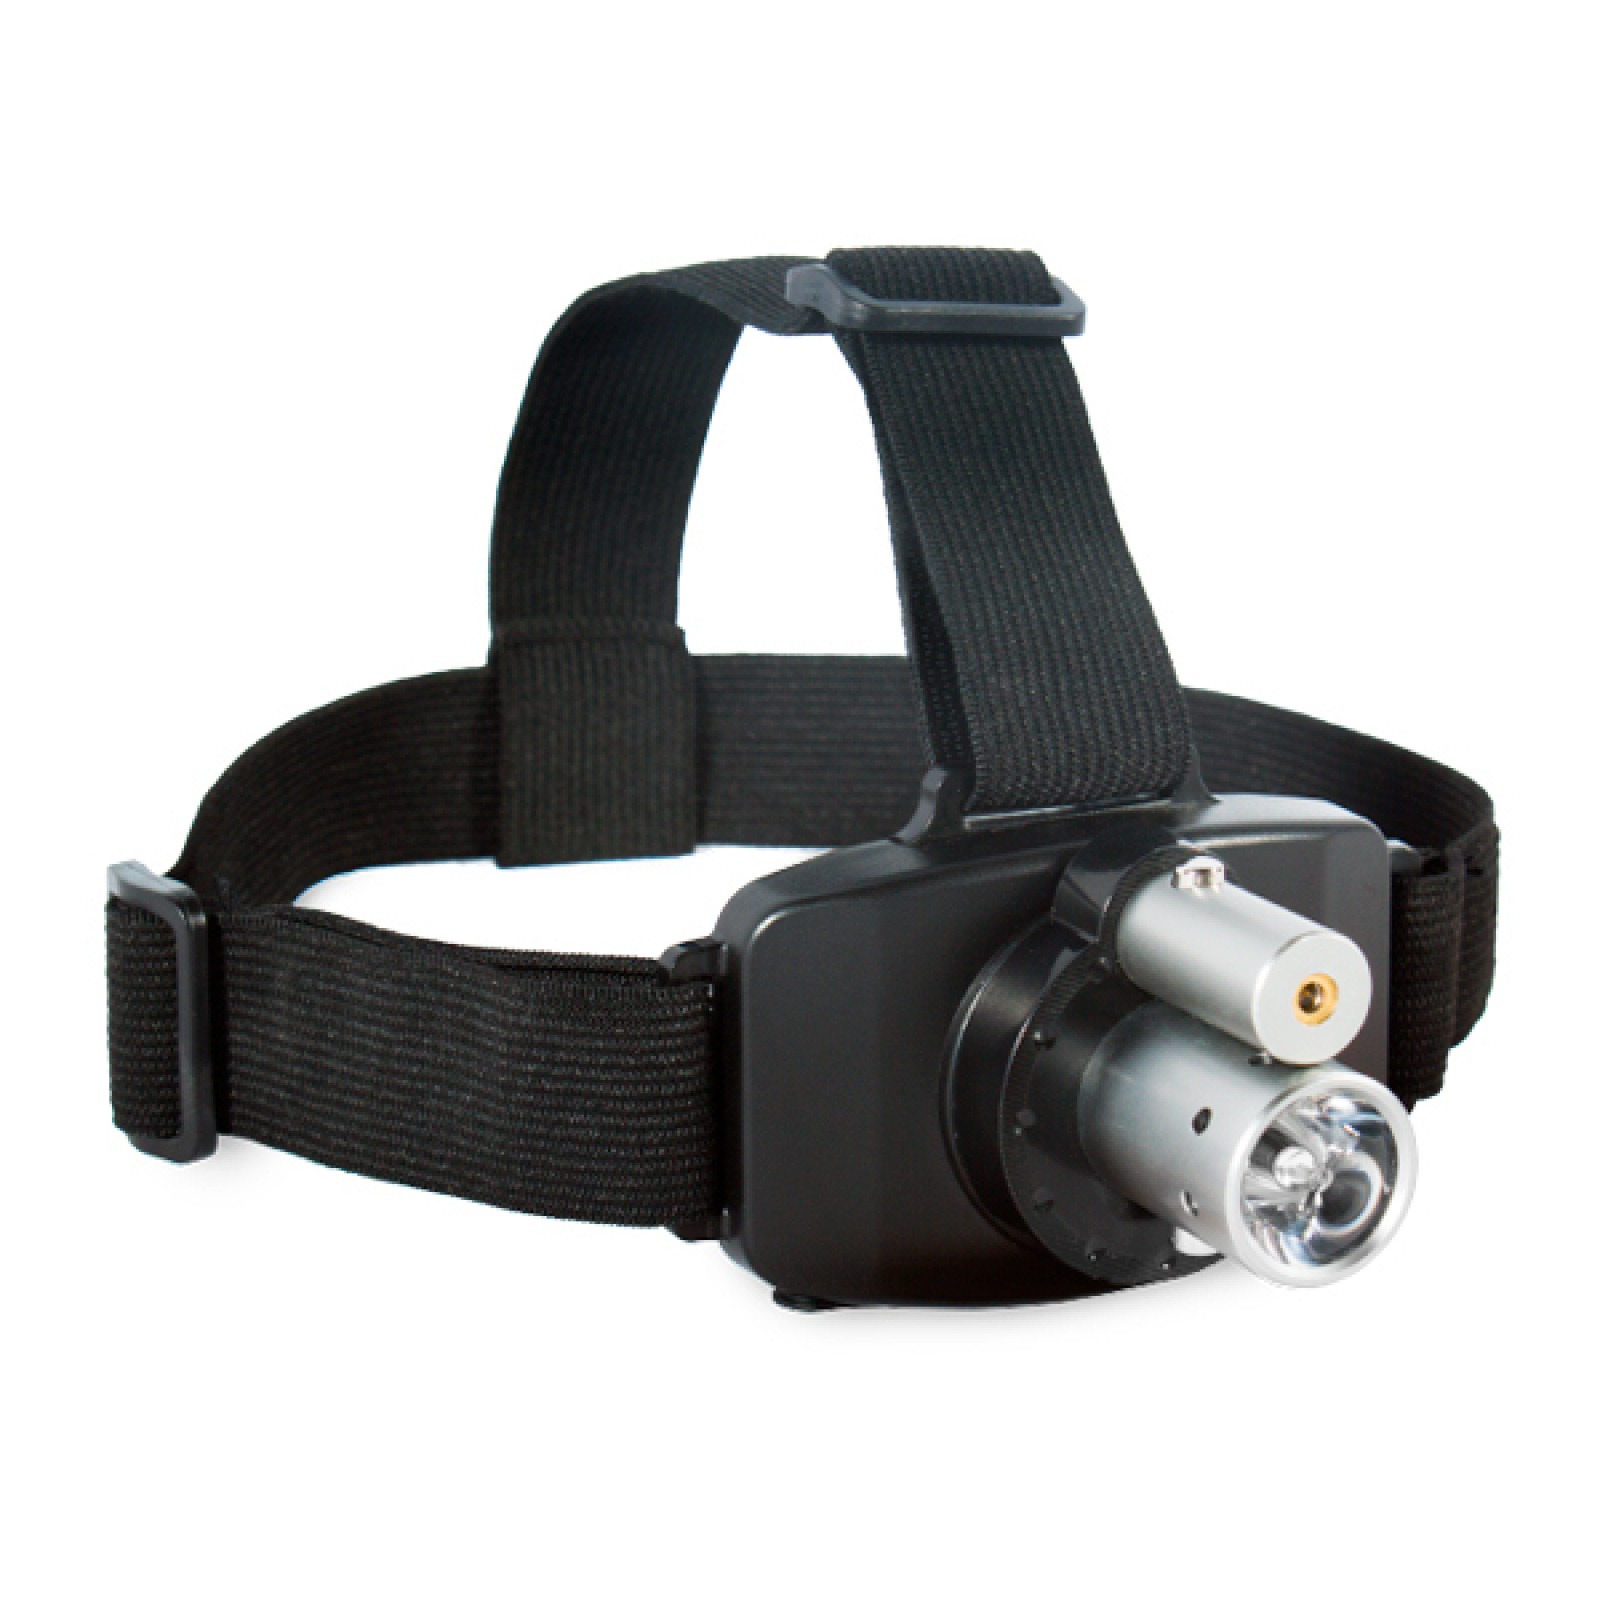 SMCOR Laser/LED headlamp